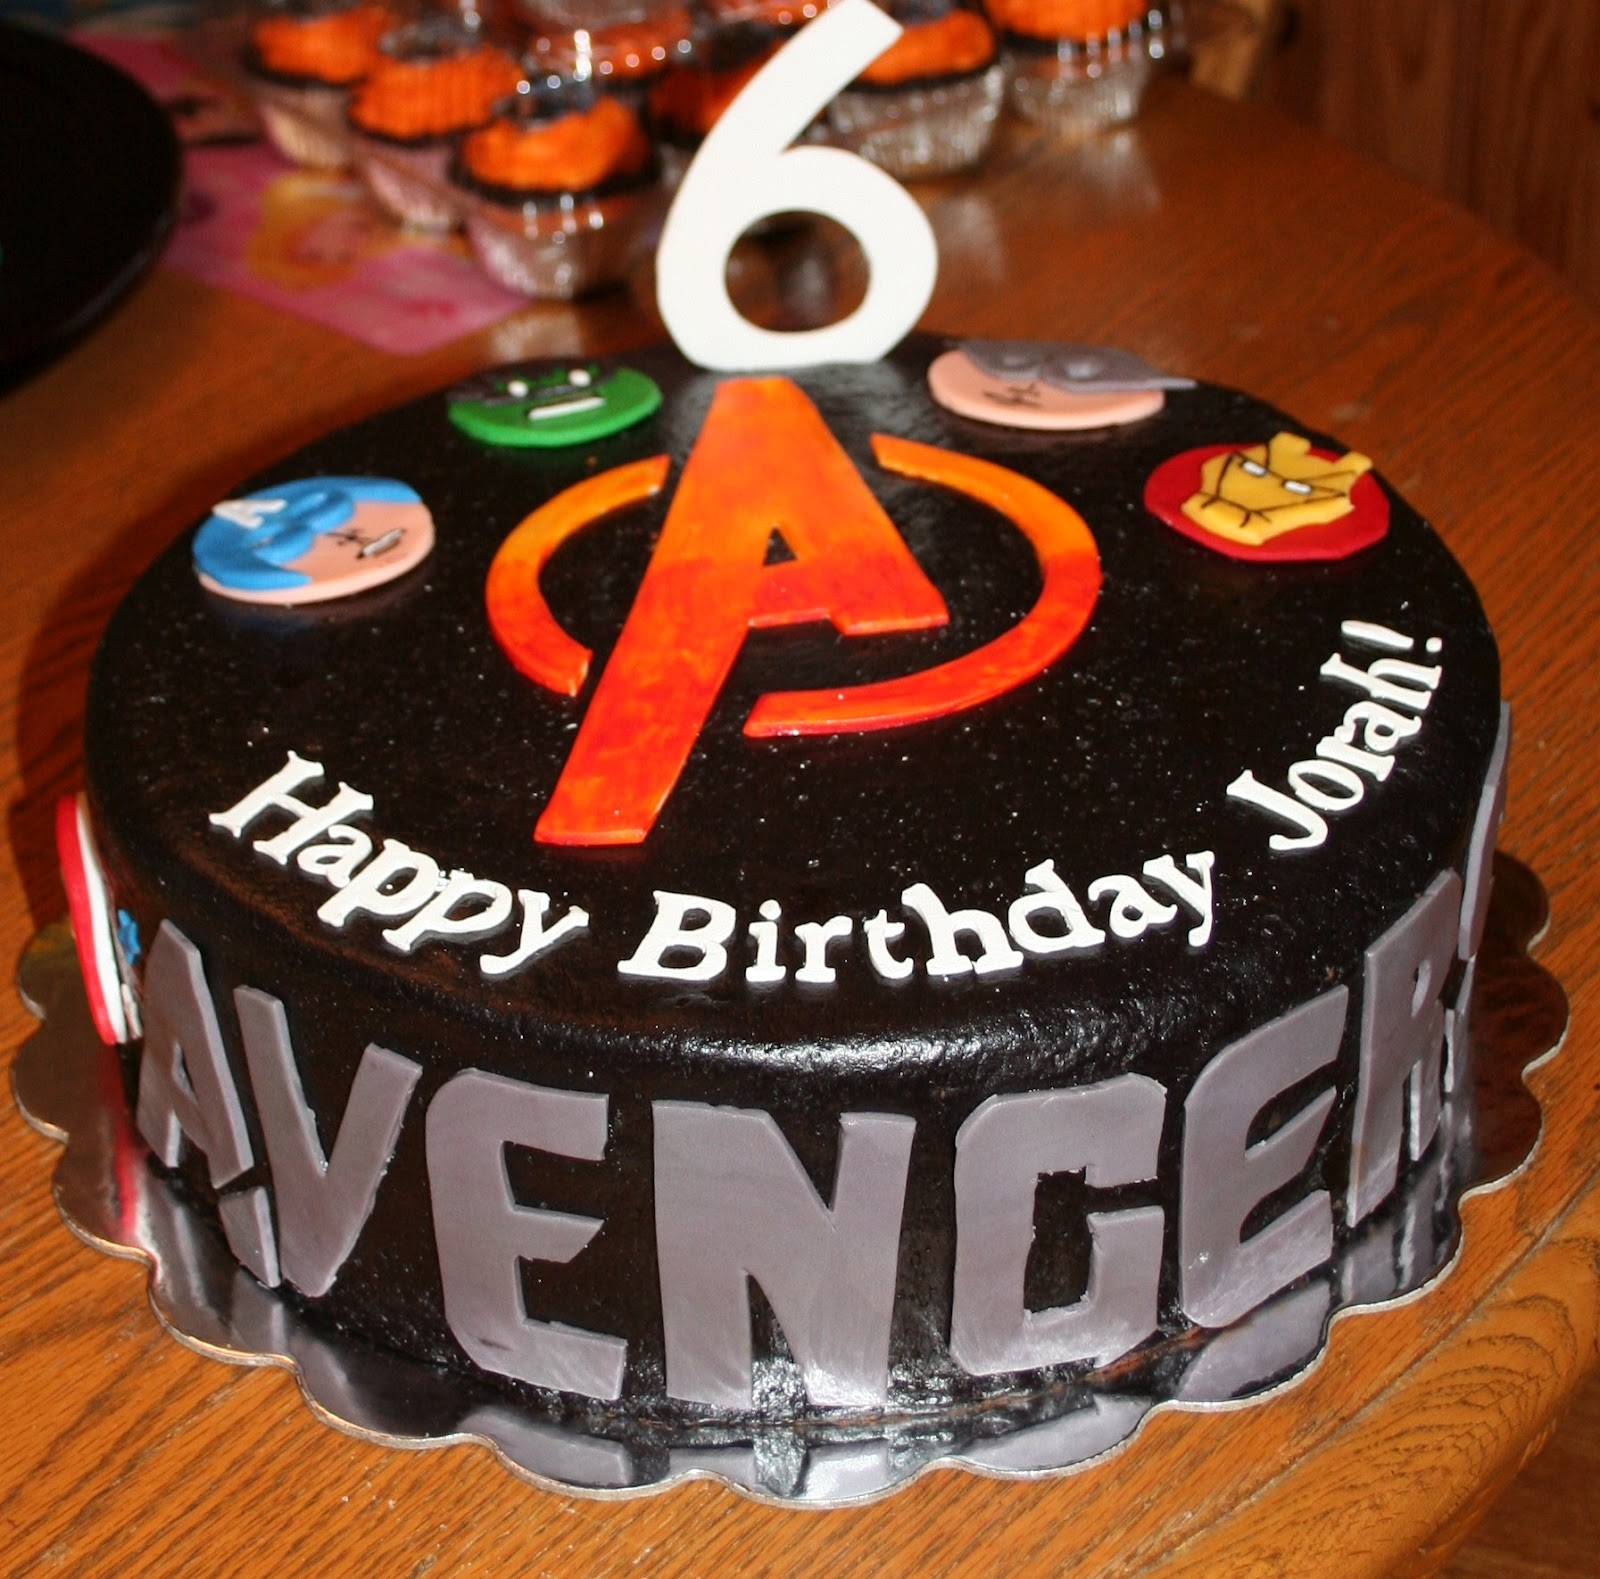 Pink Frosting Bakery Avengers Cake And Cupcakes